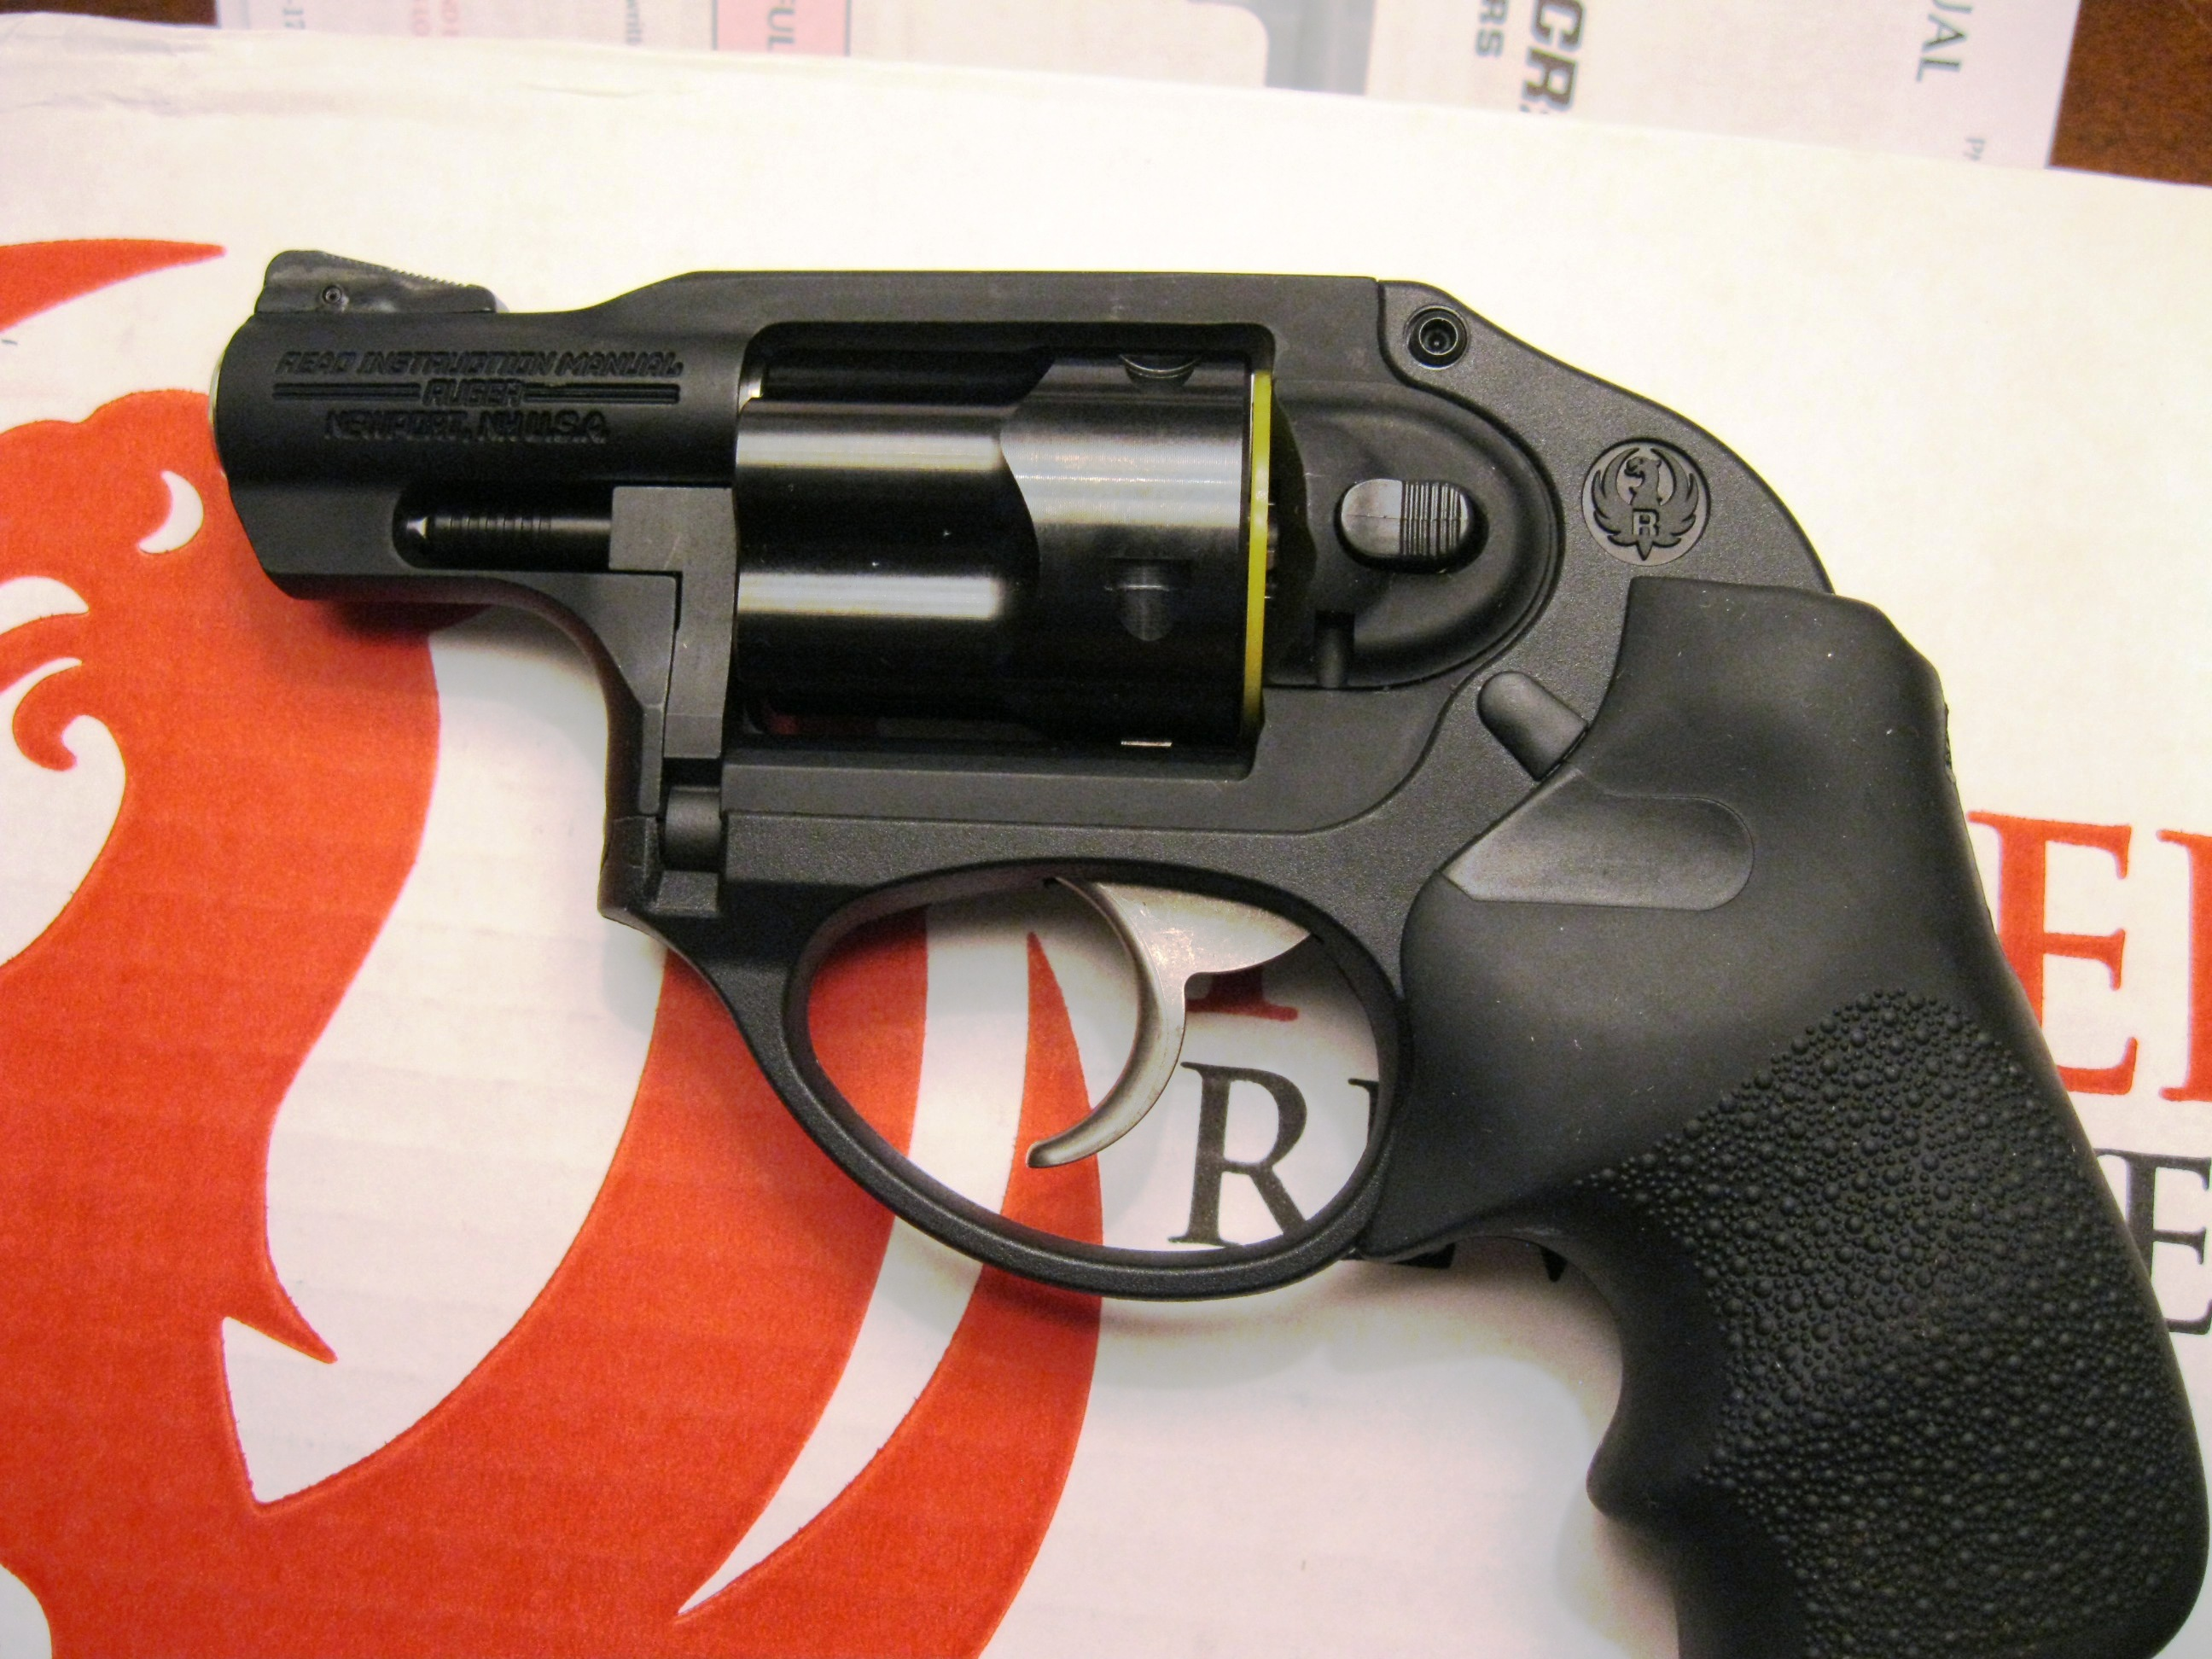 Lcr In Hand : Ruger lcr ″ black hogue grips sp p new ellis